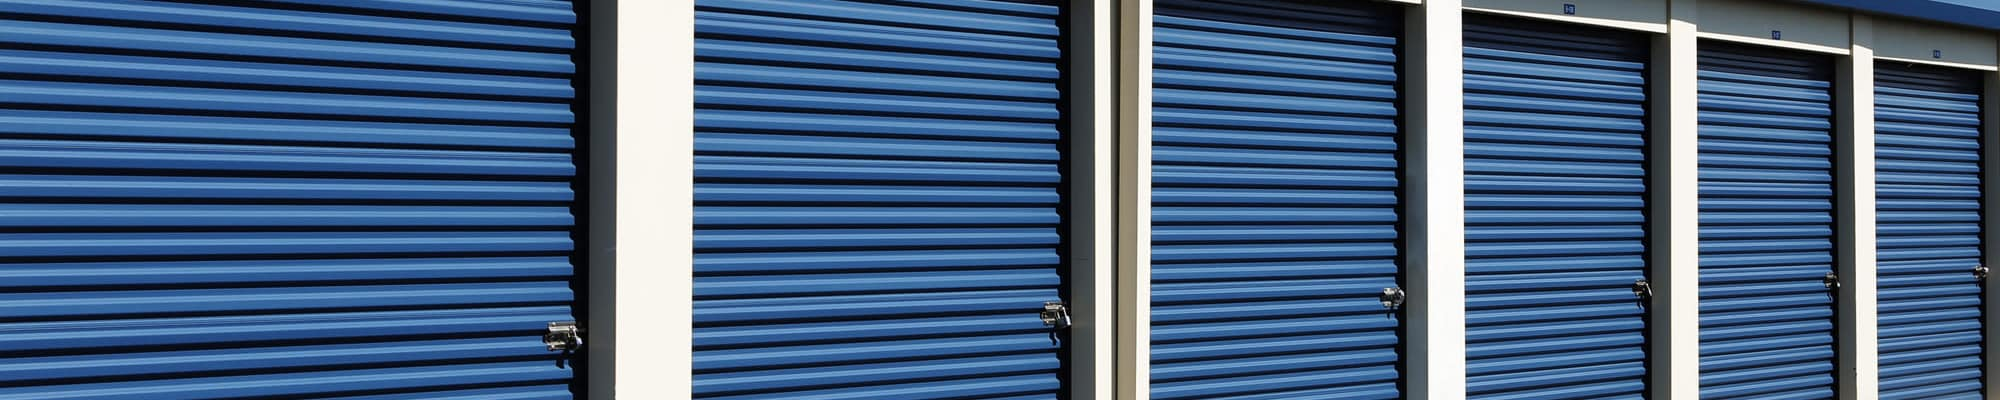 Types of storage offered at Midgard Self Storage in Roswell, Georgia